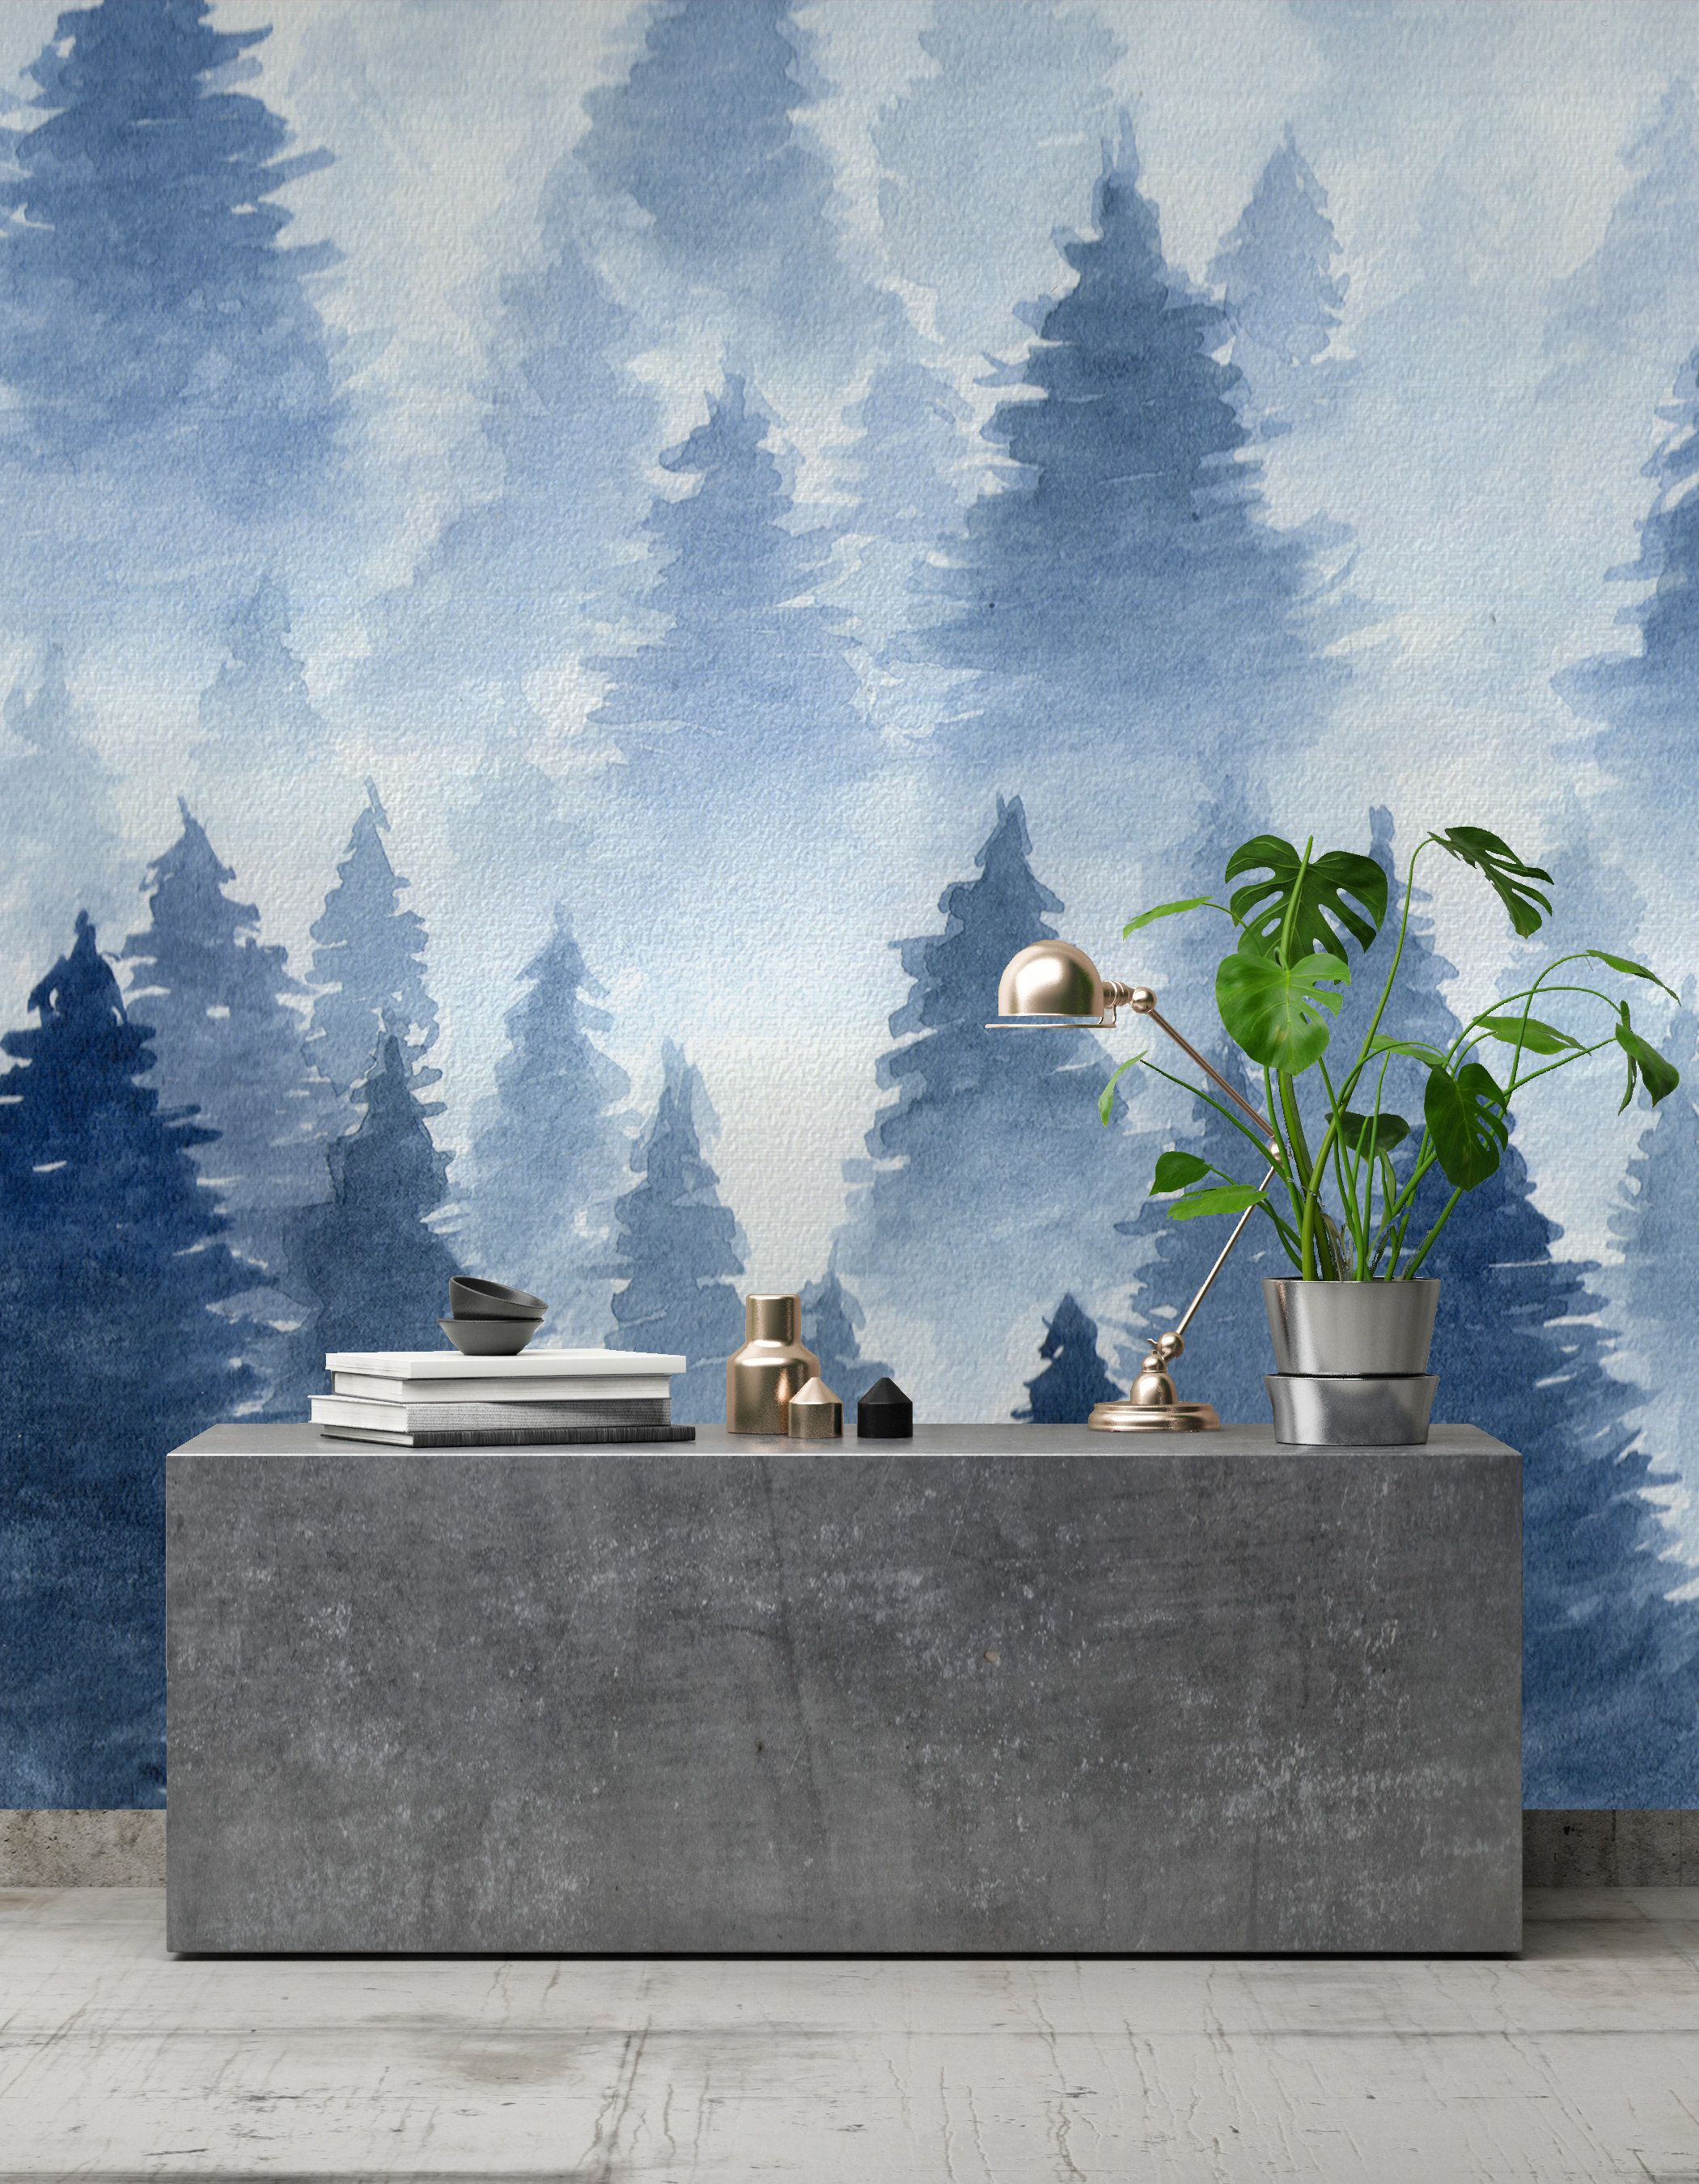 Large Peony Mural Removable Wallpaper Peel & Stick